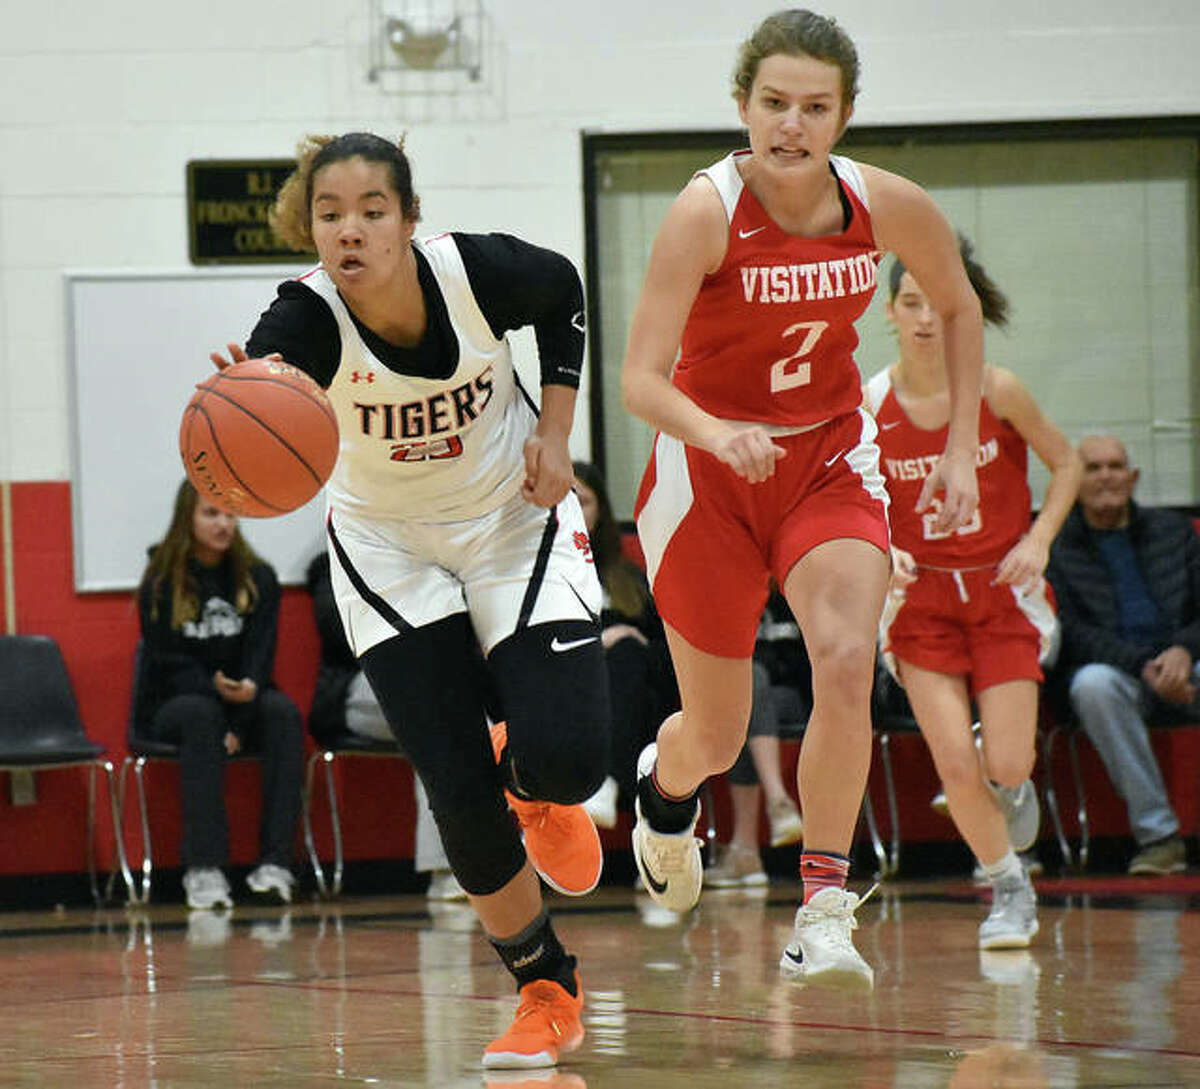 Edwardsville guard Sydney Harris races to the basket after getting a steal near mid-court during Visitation last year in the holiday tournament in St. Louis.